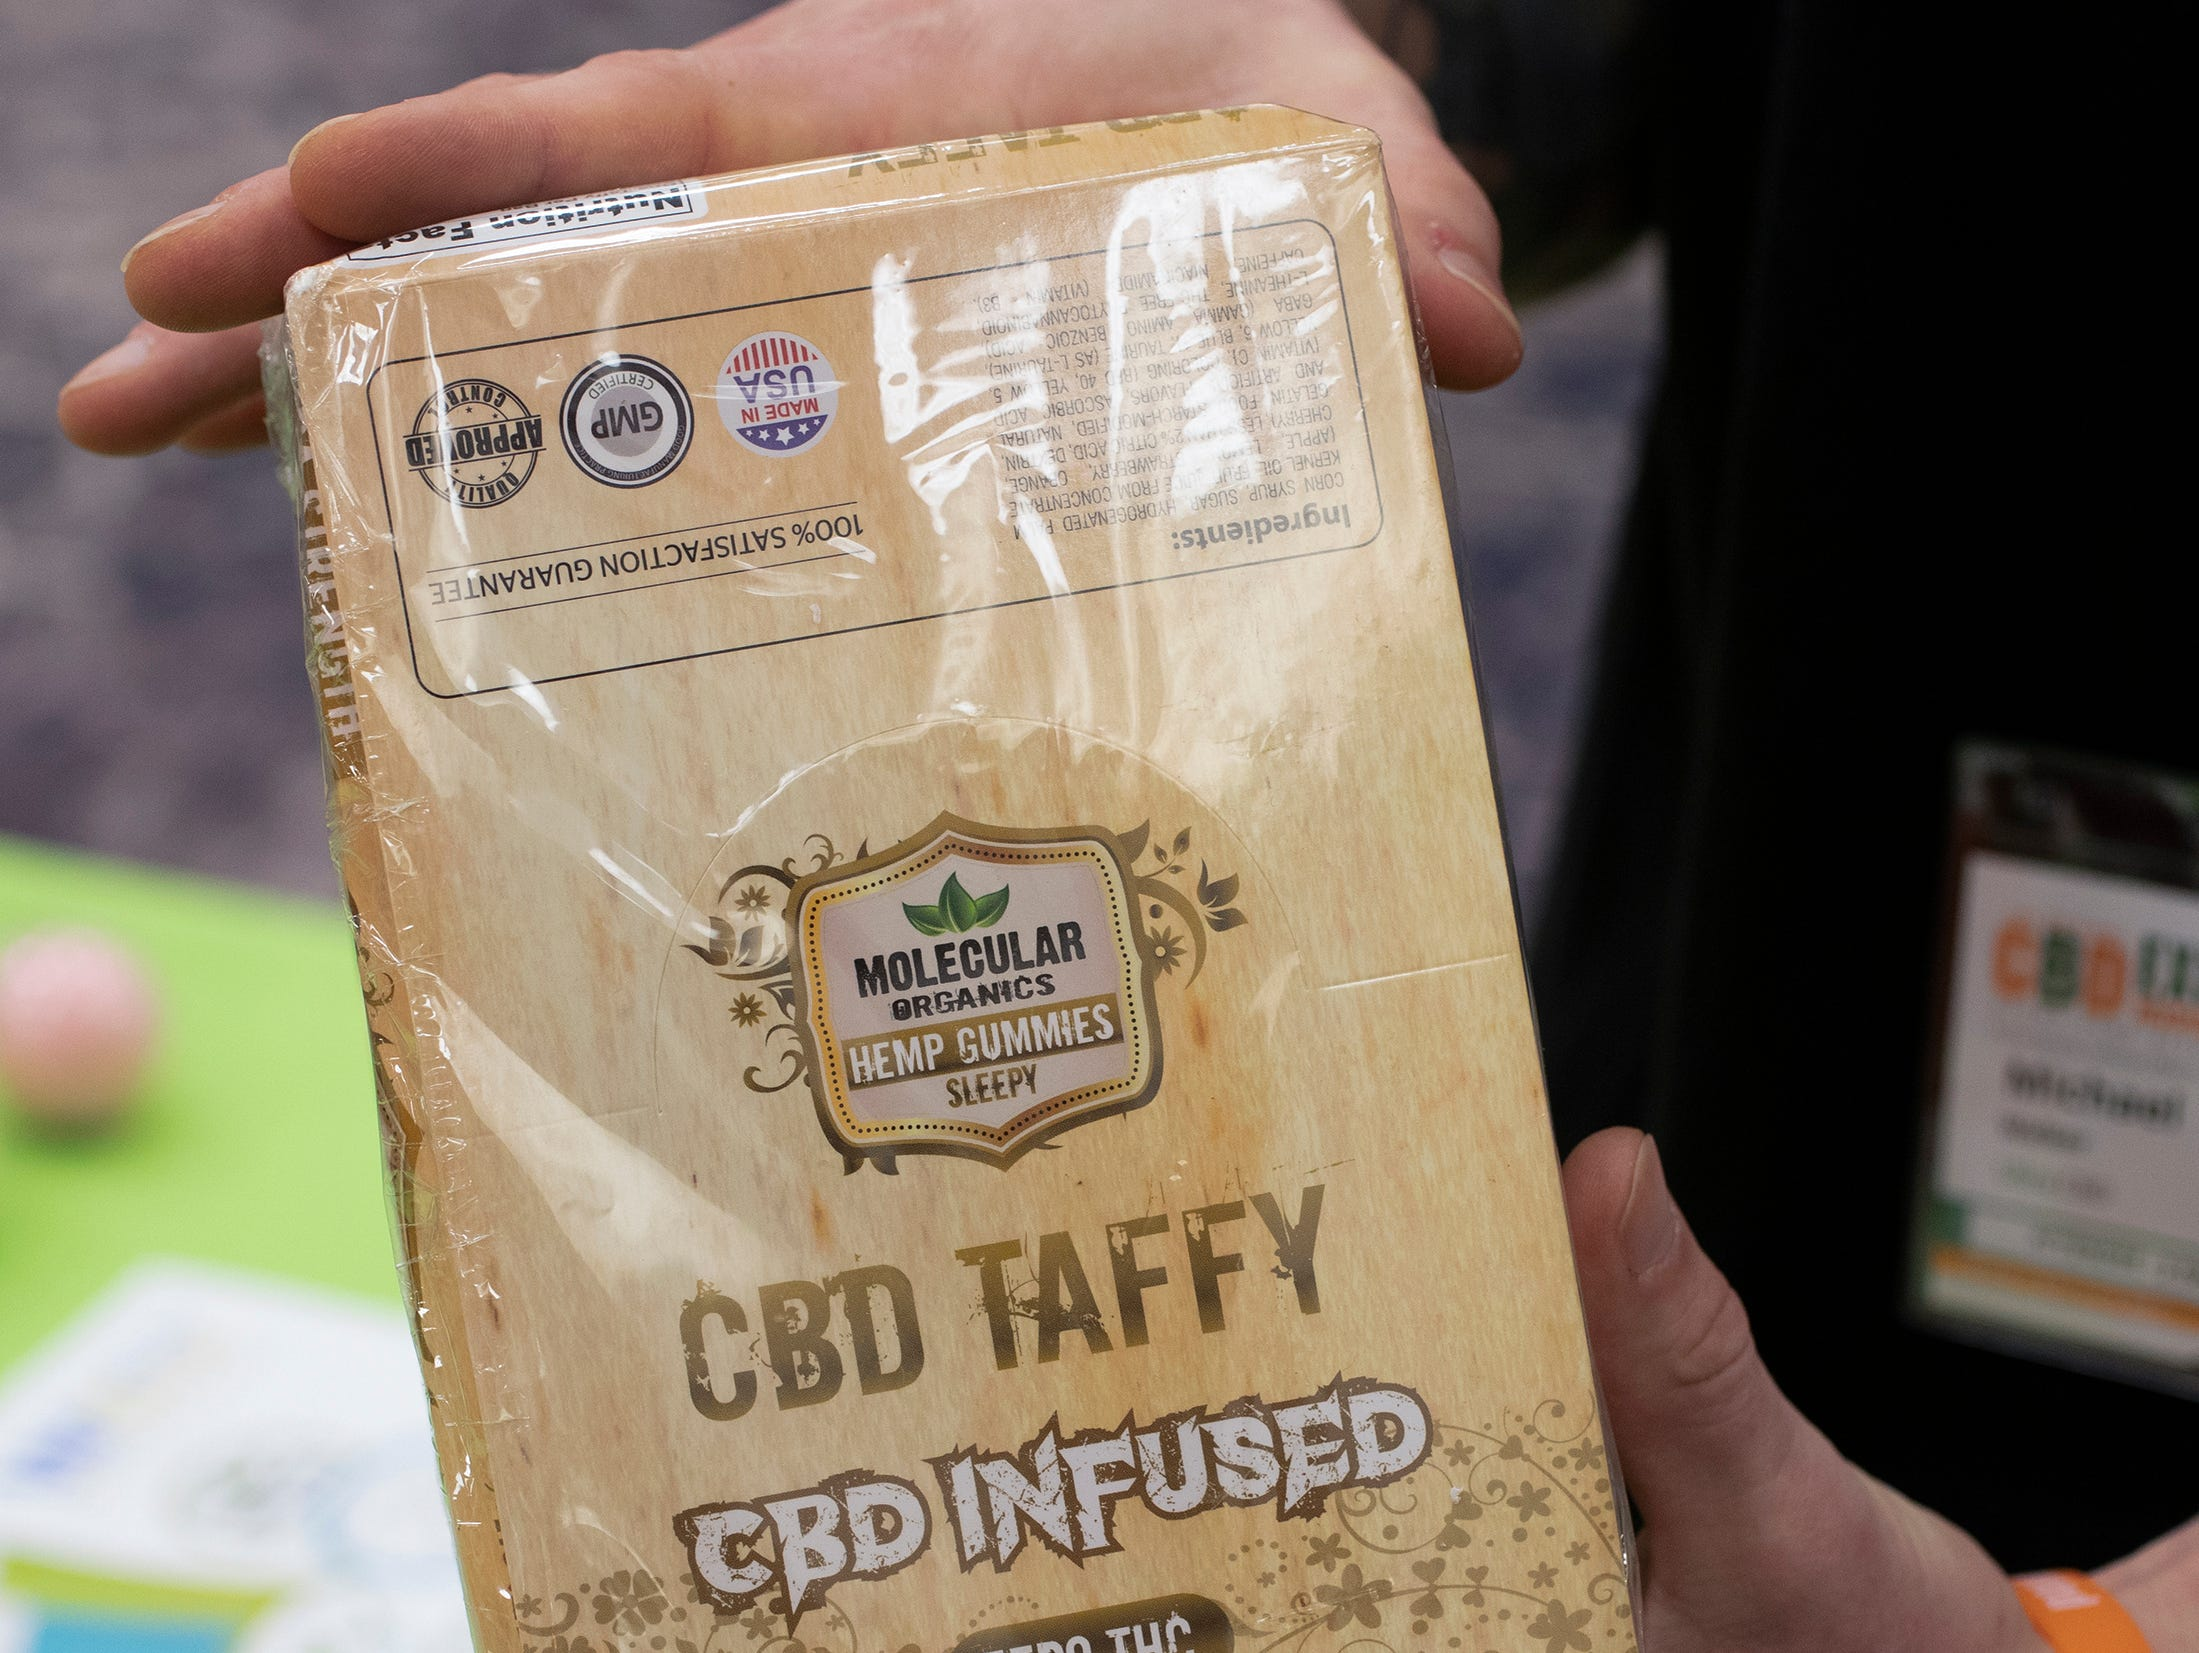 CBD Taffy from Molecular Organics at the CBD Expo at the Marriott East in Indianapolis on Friday, Mar. 15, 2019.